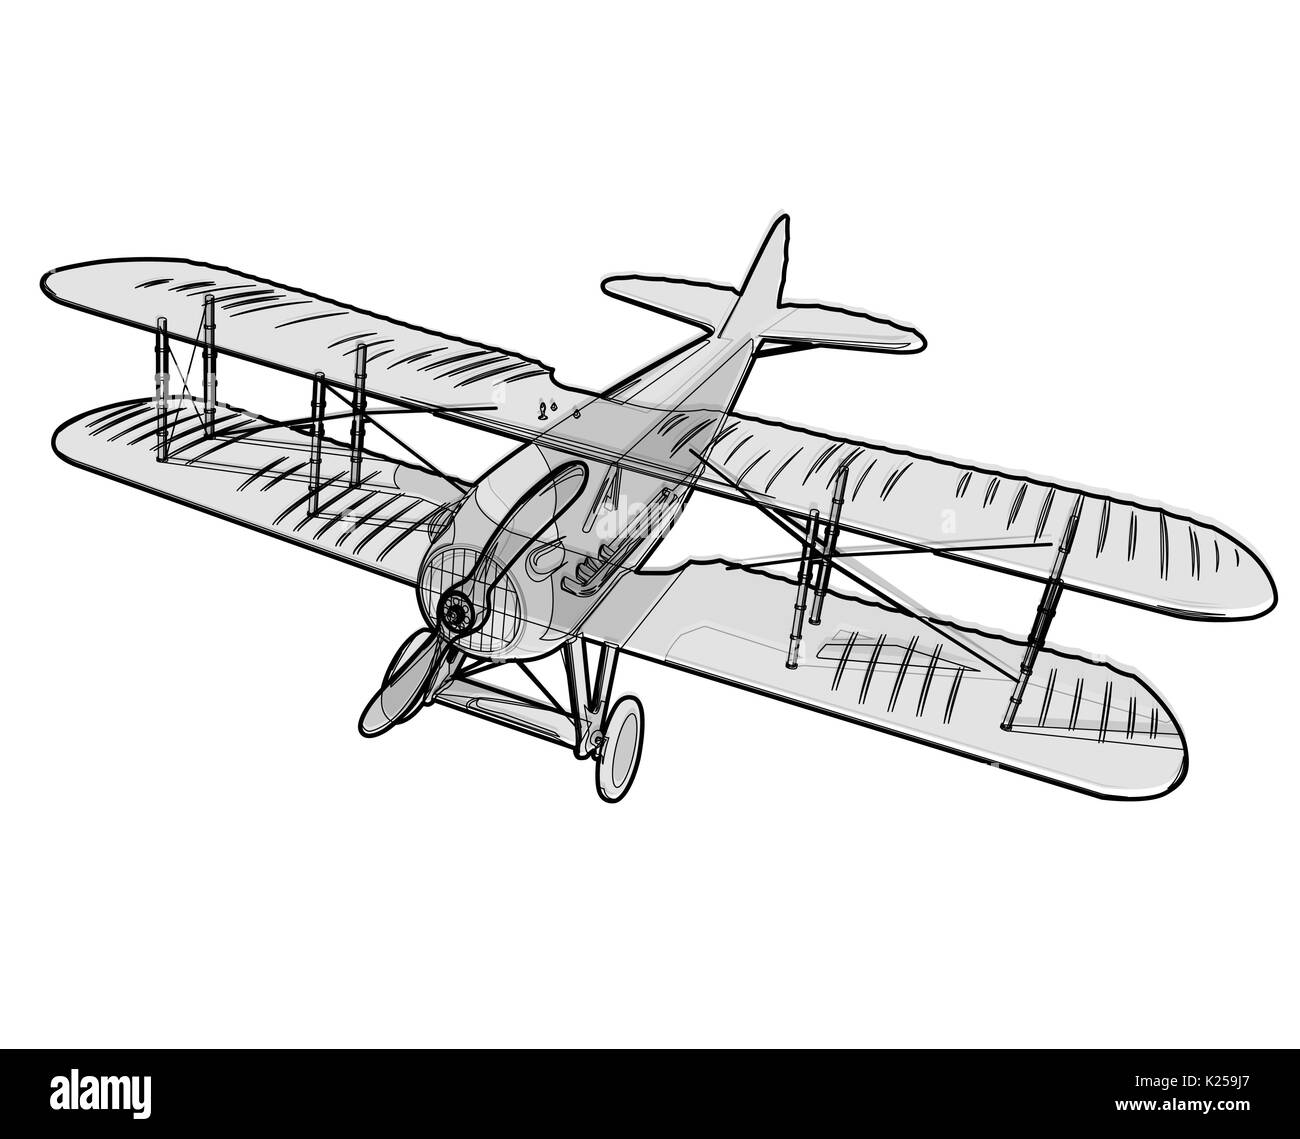 Vector biplane from World War with outline. Wire model aircraft propeller with two wings. Old retro vector aircraft designed for poster printing. - Stock Image